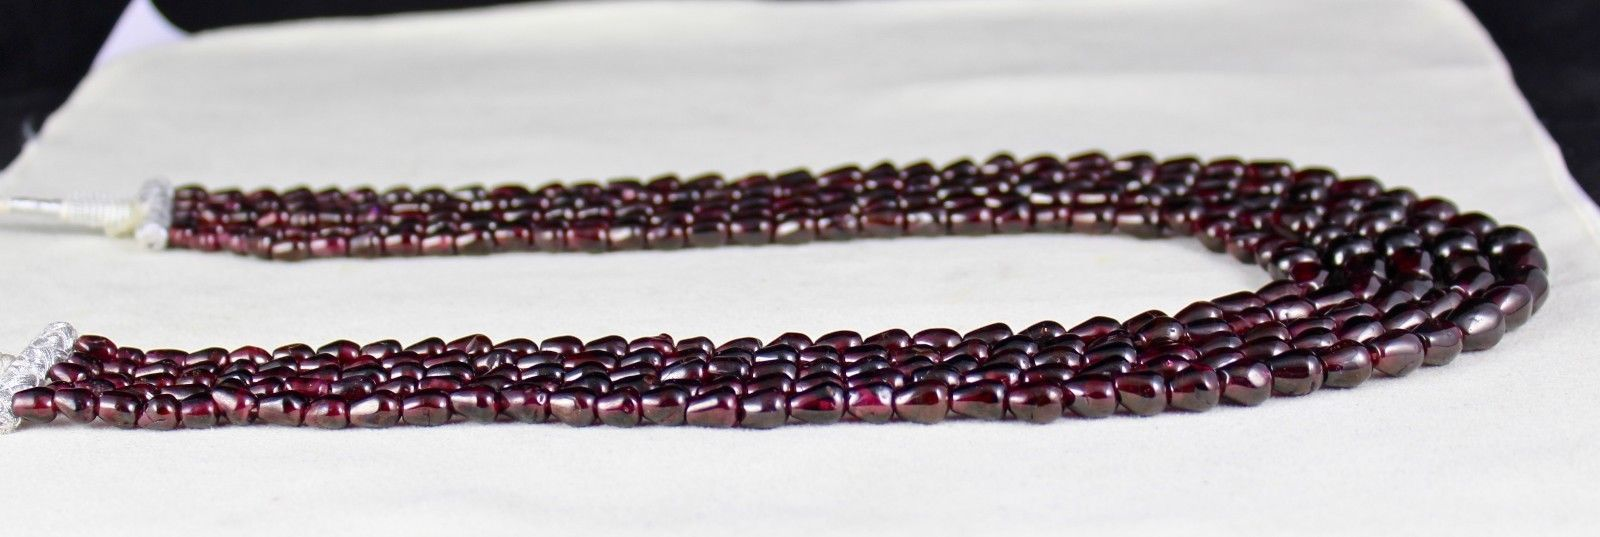 5 LINE 1057 CARATS NATURAL GARNET FANCY GEMSTONE LADIES BEADS NECKLACE